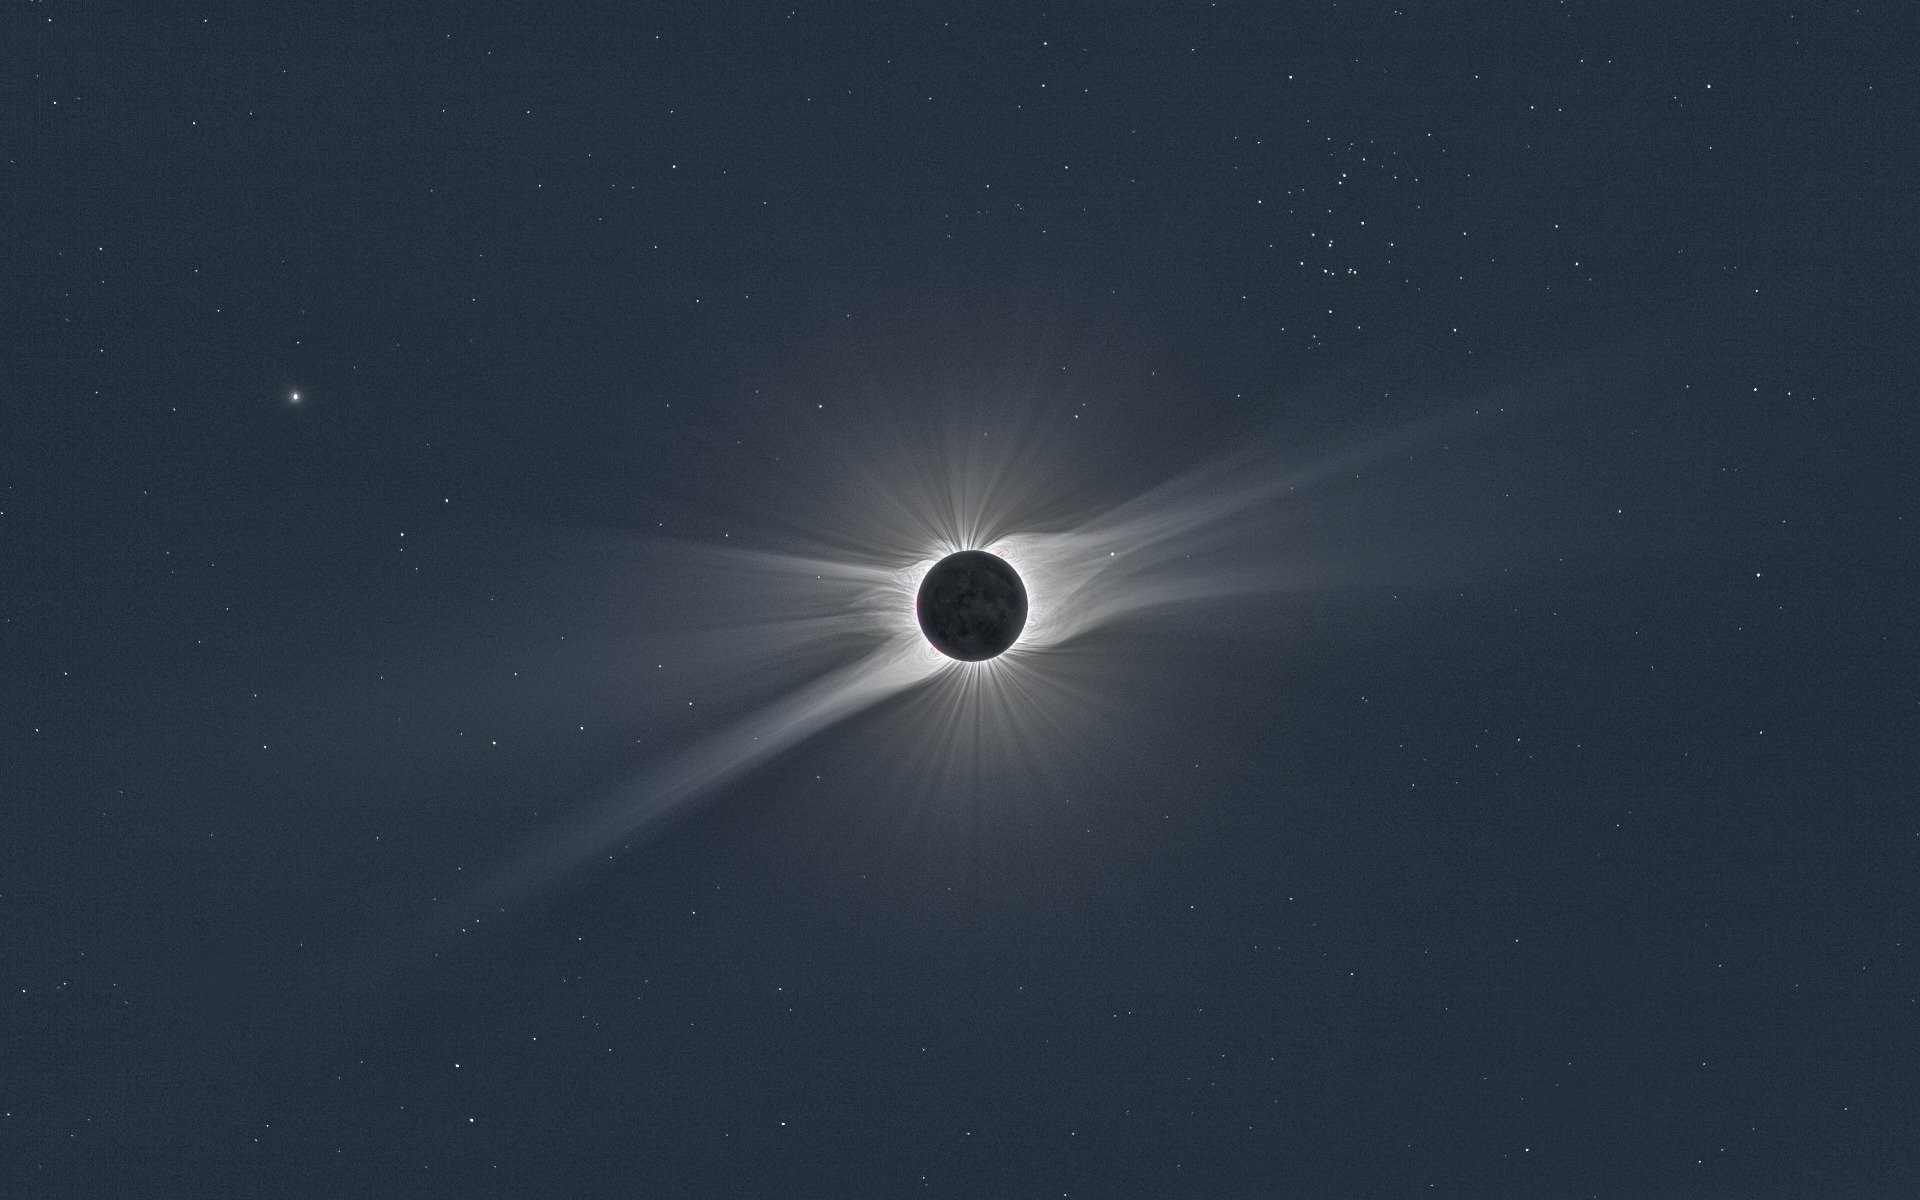 Eclipse-Space-Outer-Nature-Hd-1080p-Widescreen-wallpaper-wpc5804505